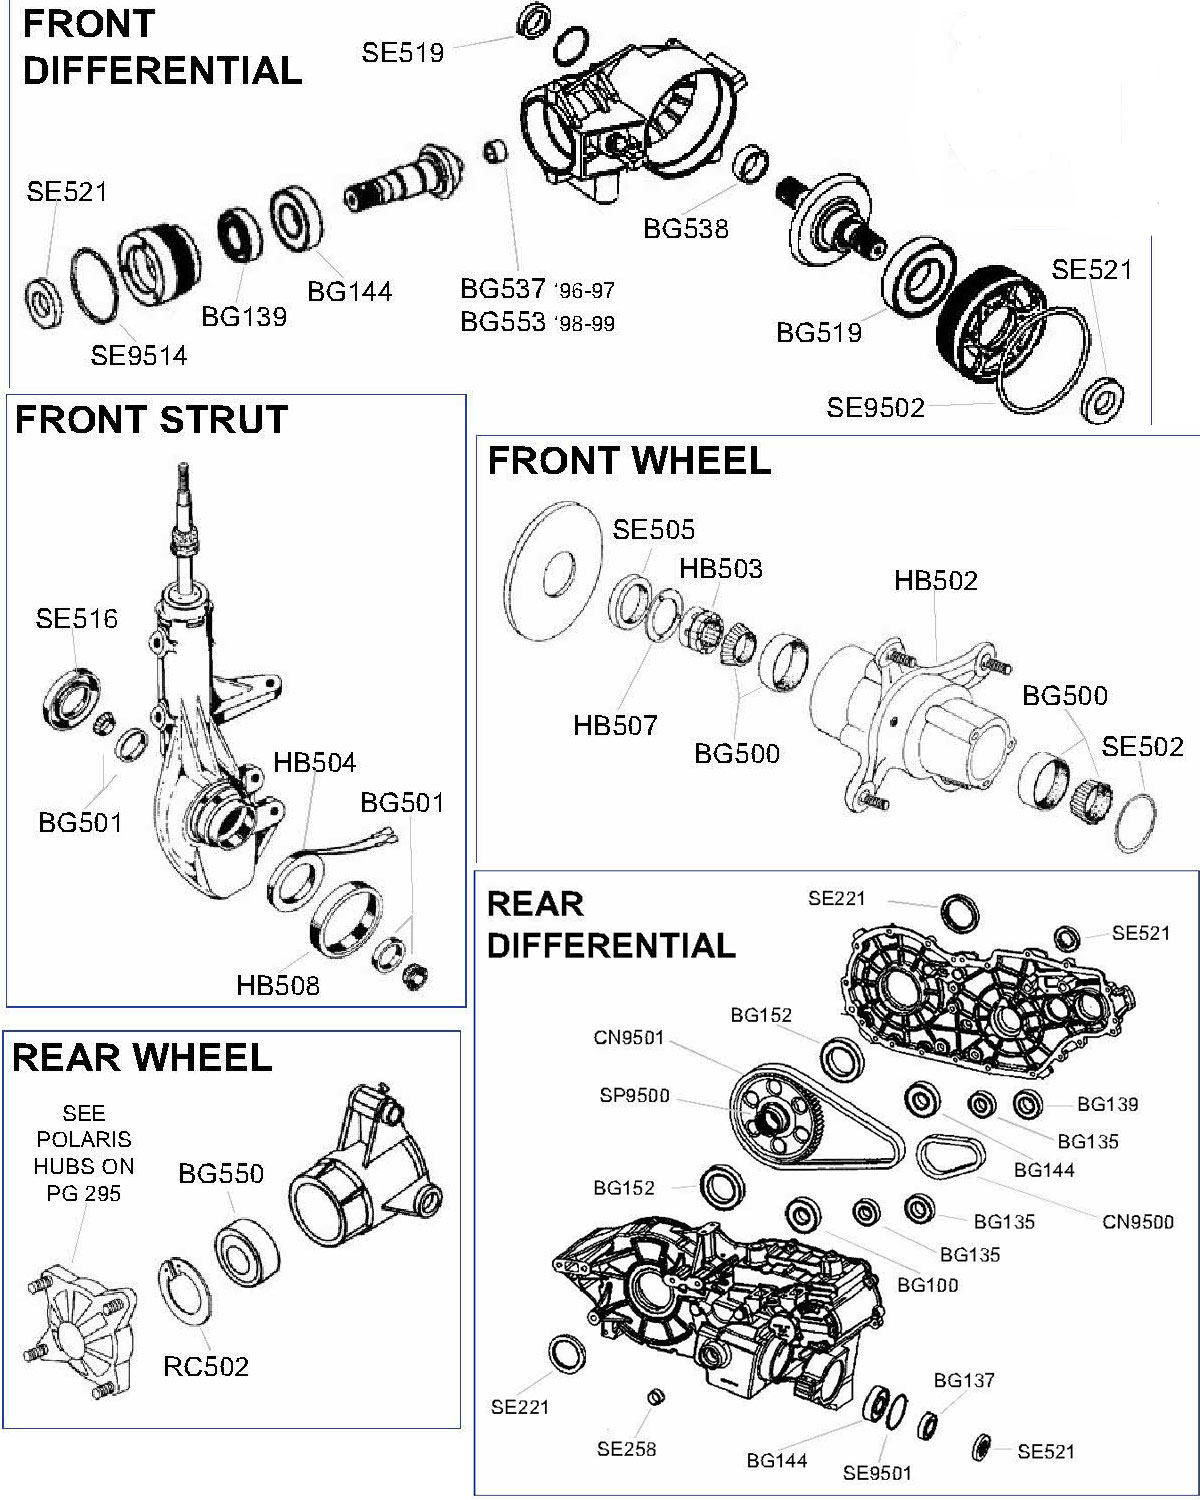 Polaris Sportsman 335 Wiring Diagram Library 2004 500 Ignition Parts Atv